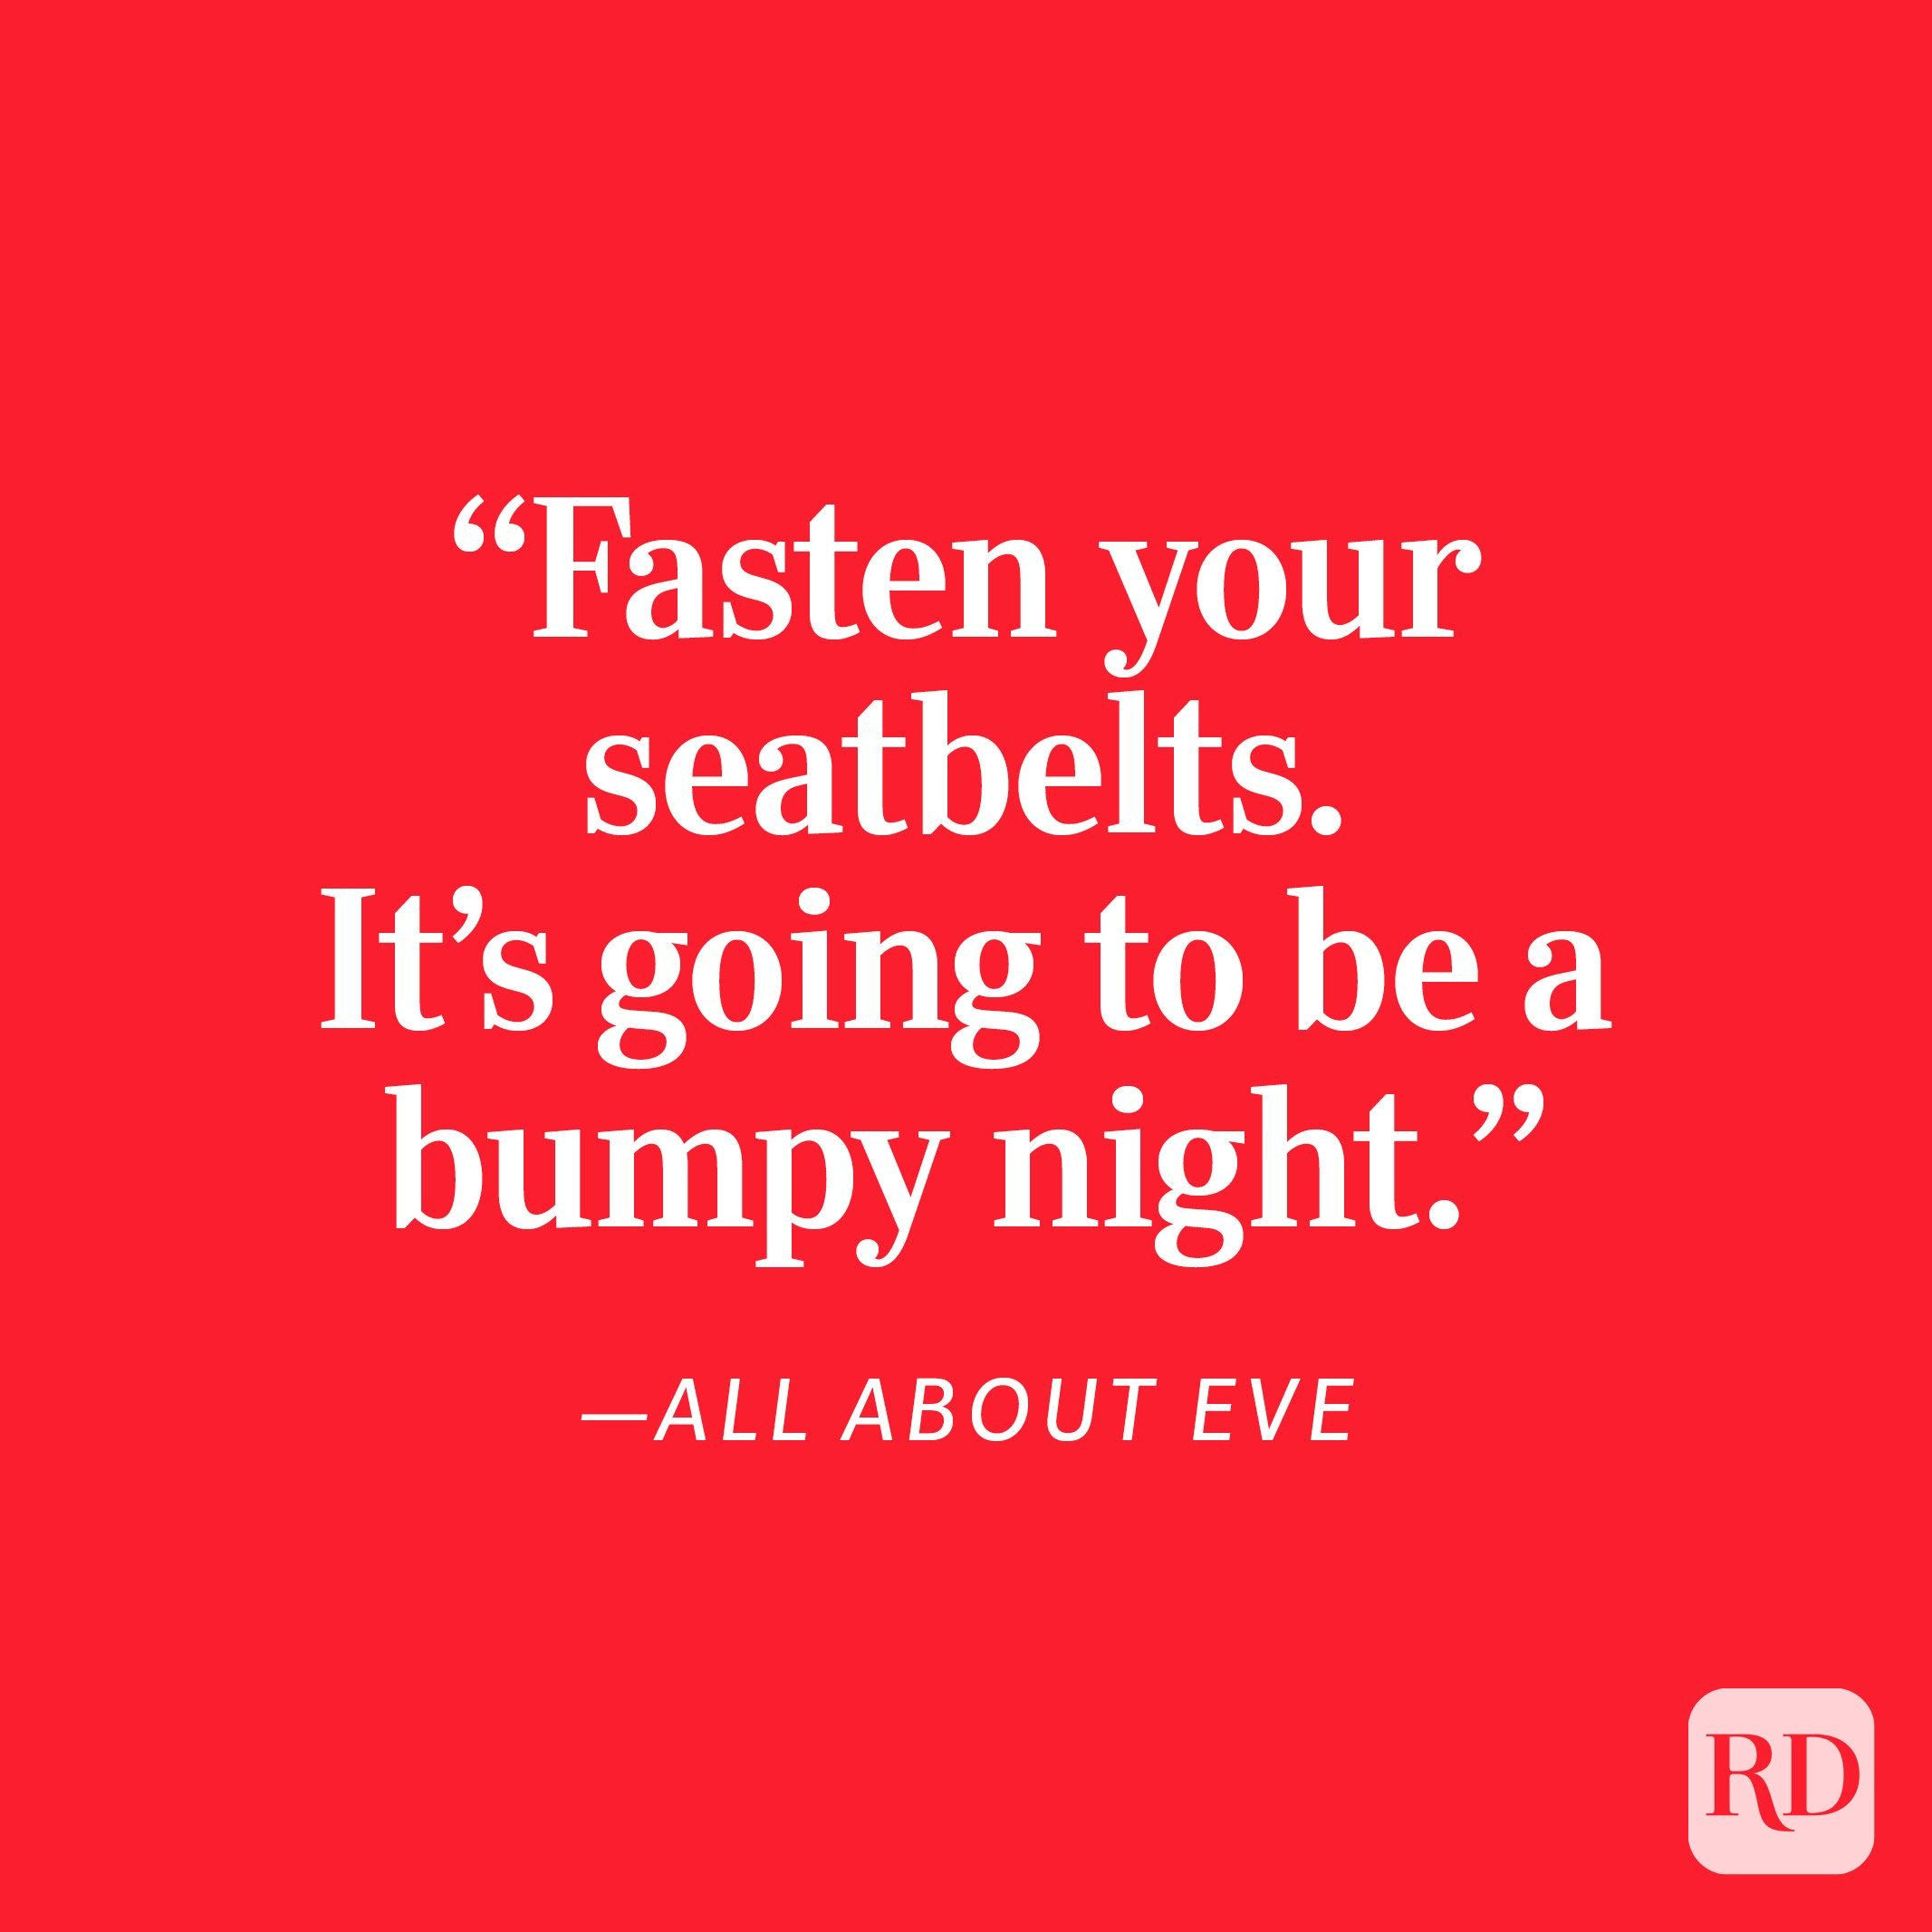 """All About Eve """"Fasten your seatbelts. It's going to be a bumpy night."""""""